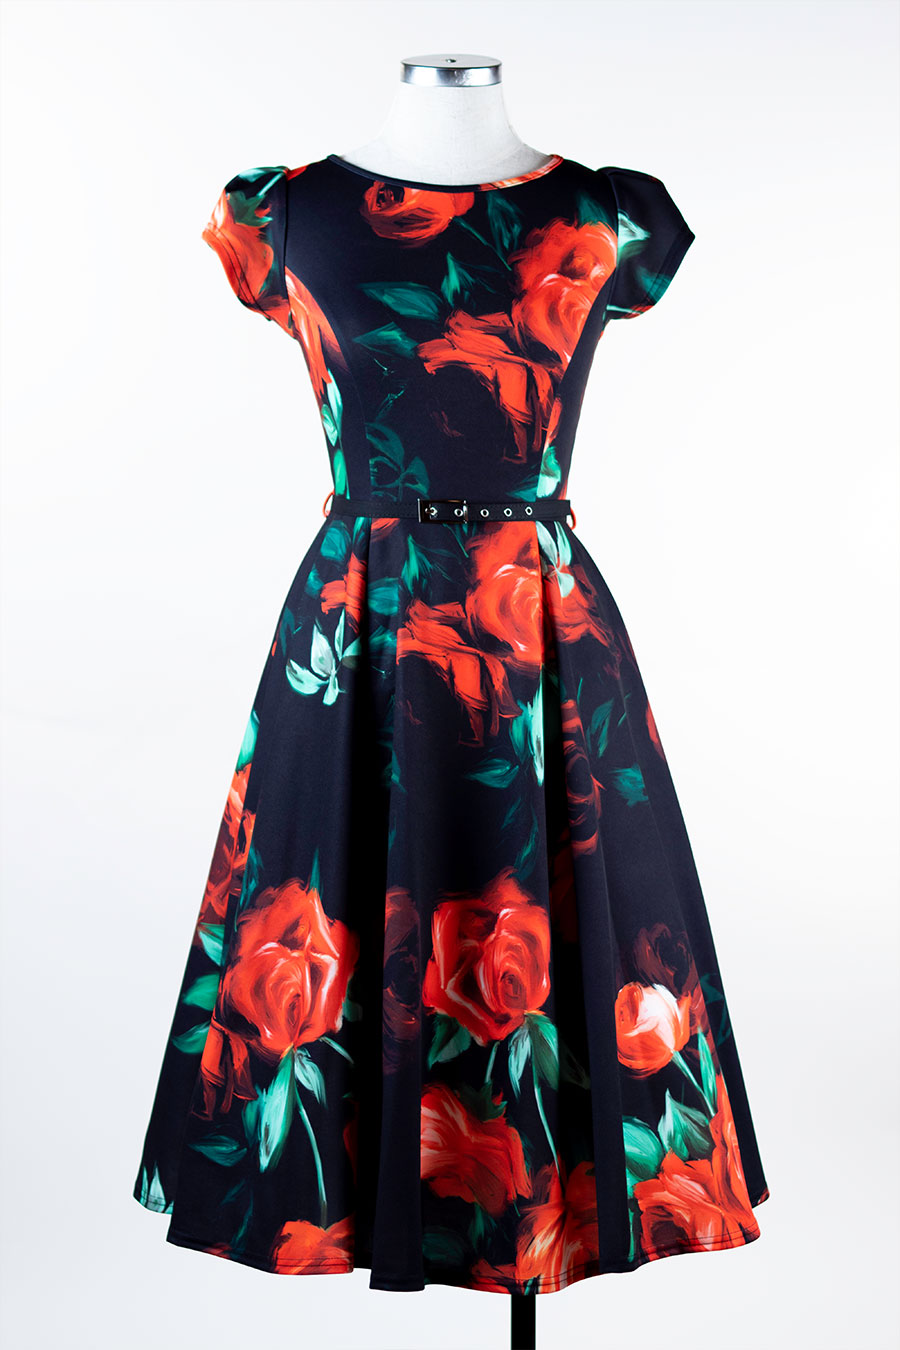 103f7b2b01c01 Vintage Dresses | 1950's Style Made in the UK | Sizes 8-28